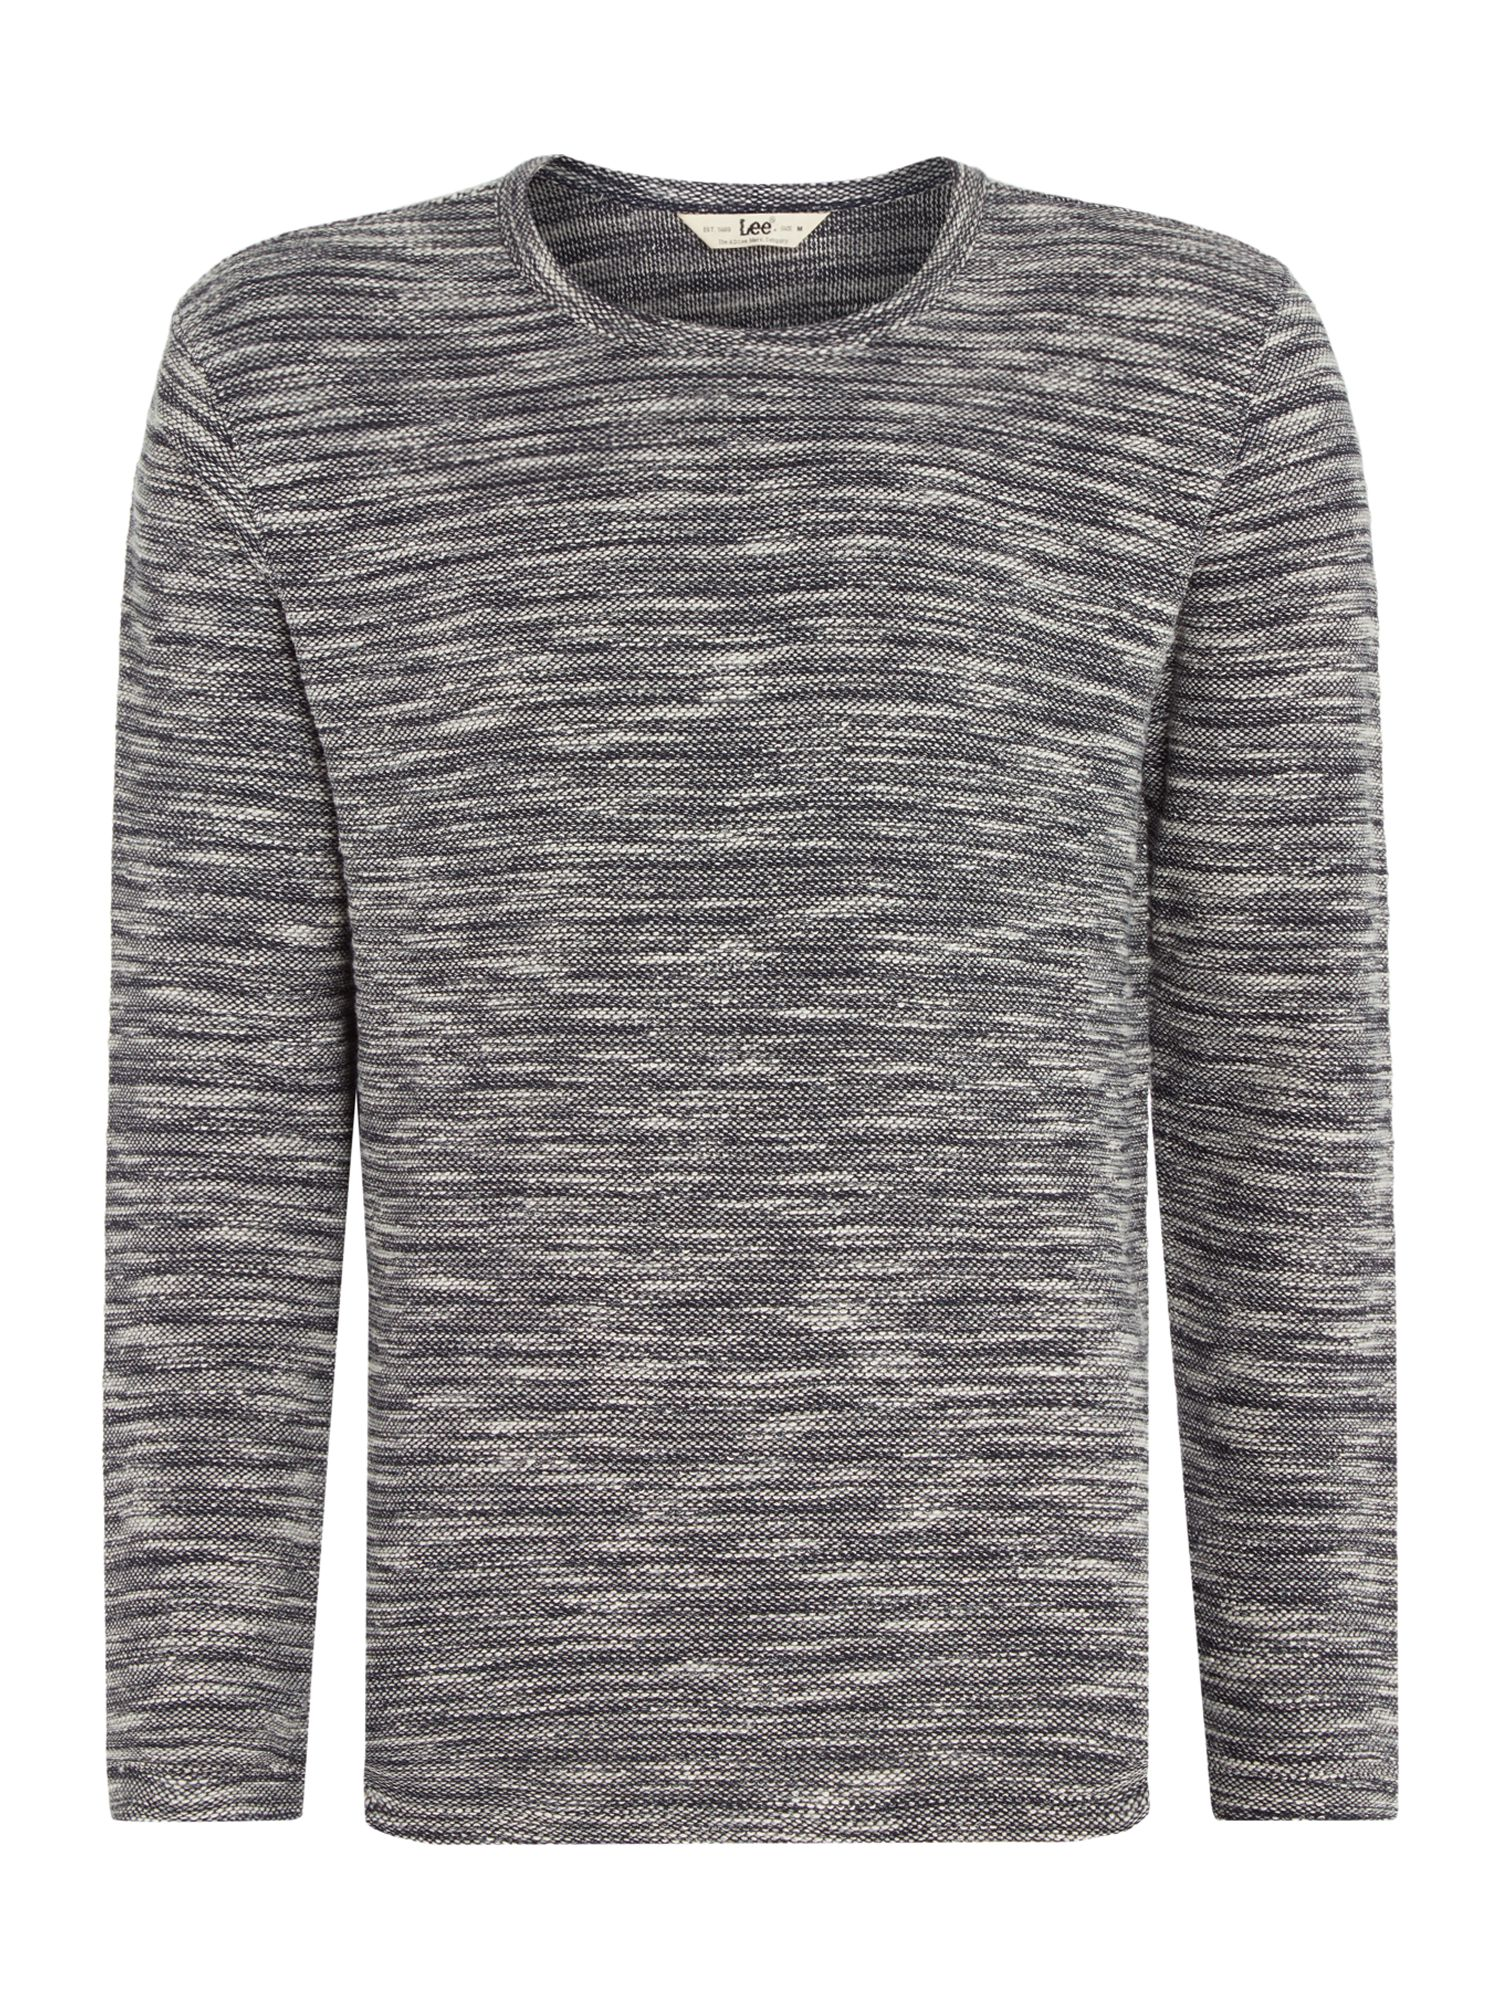 Men's Lee Plain slate sweatshirt, Slate